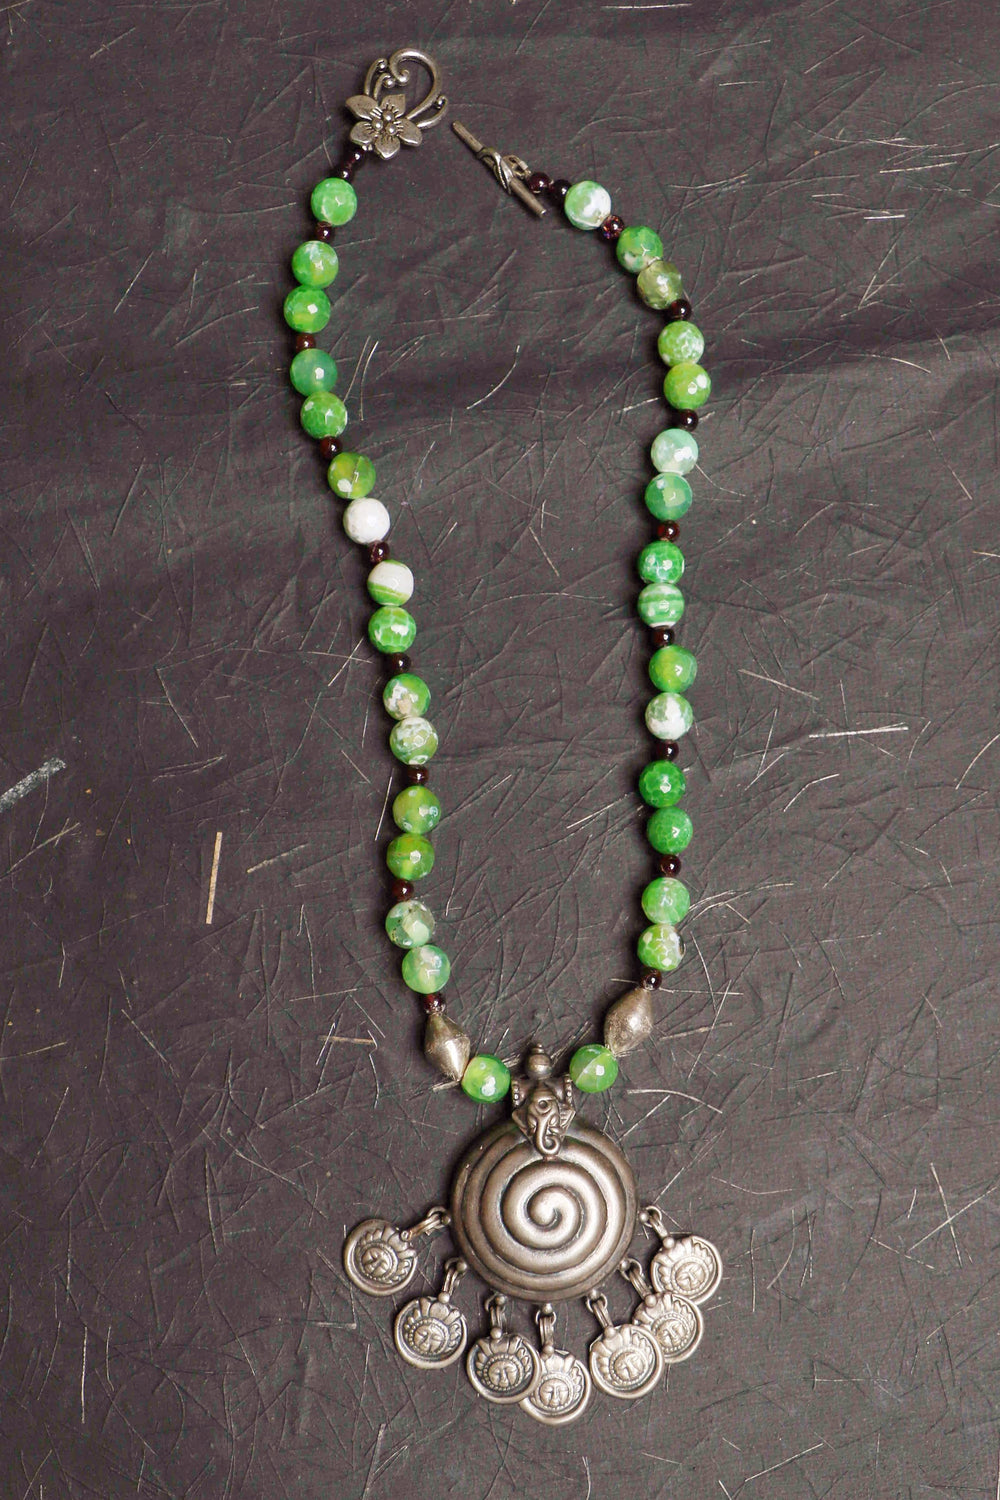 Green Agate Jewelry Necklace